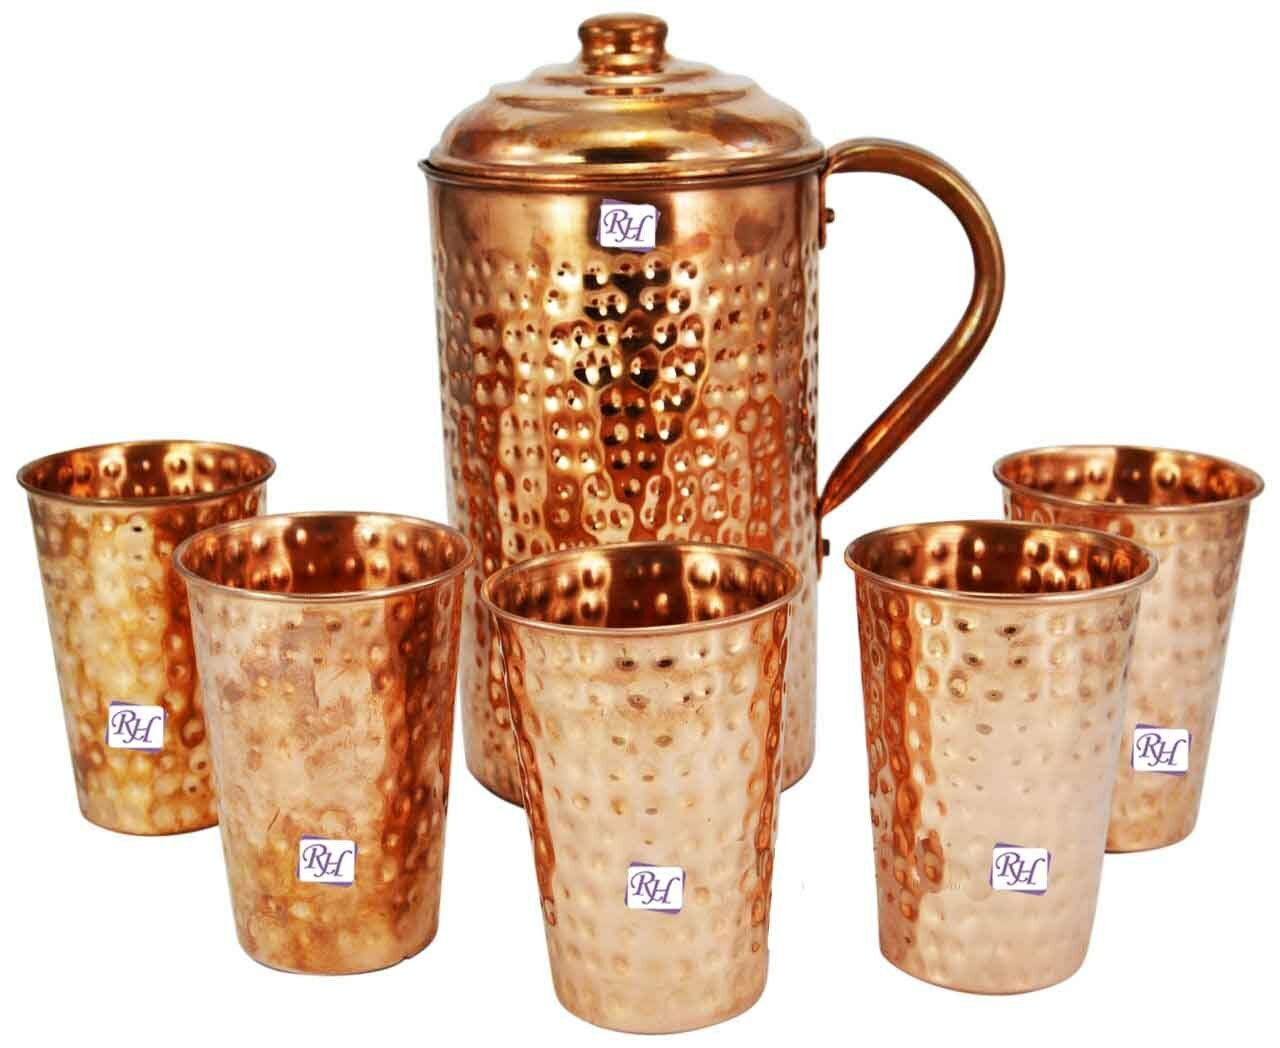 Copper water pitcher pichet & 5pcs Cuivre Verre from Indian Ayurveda